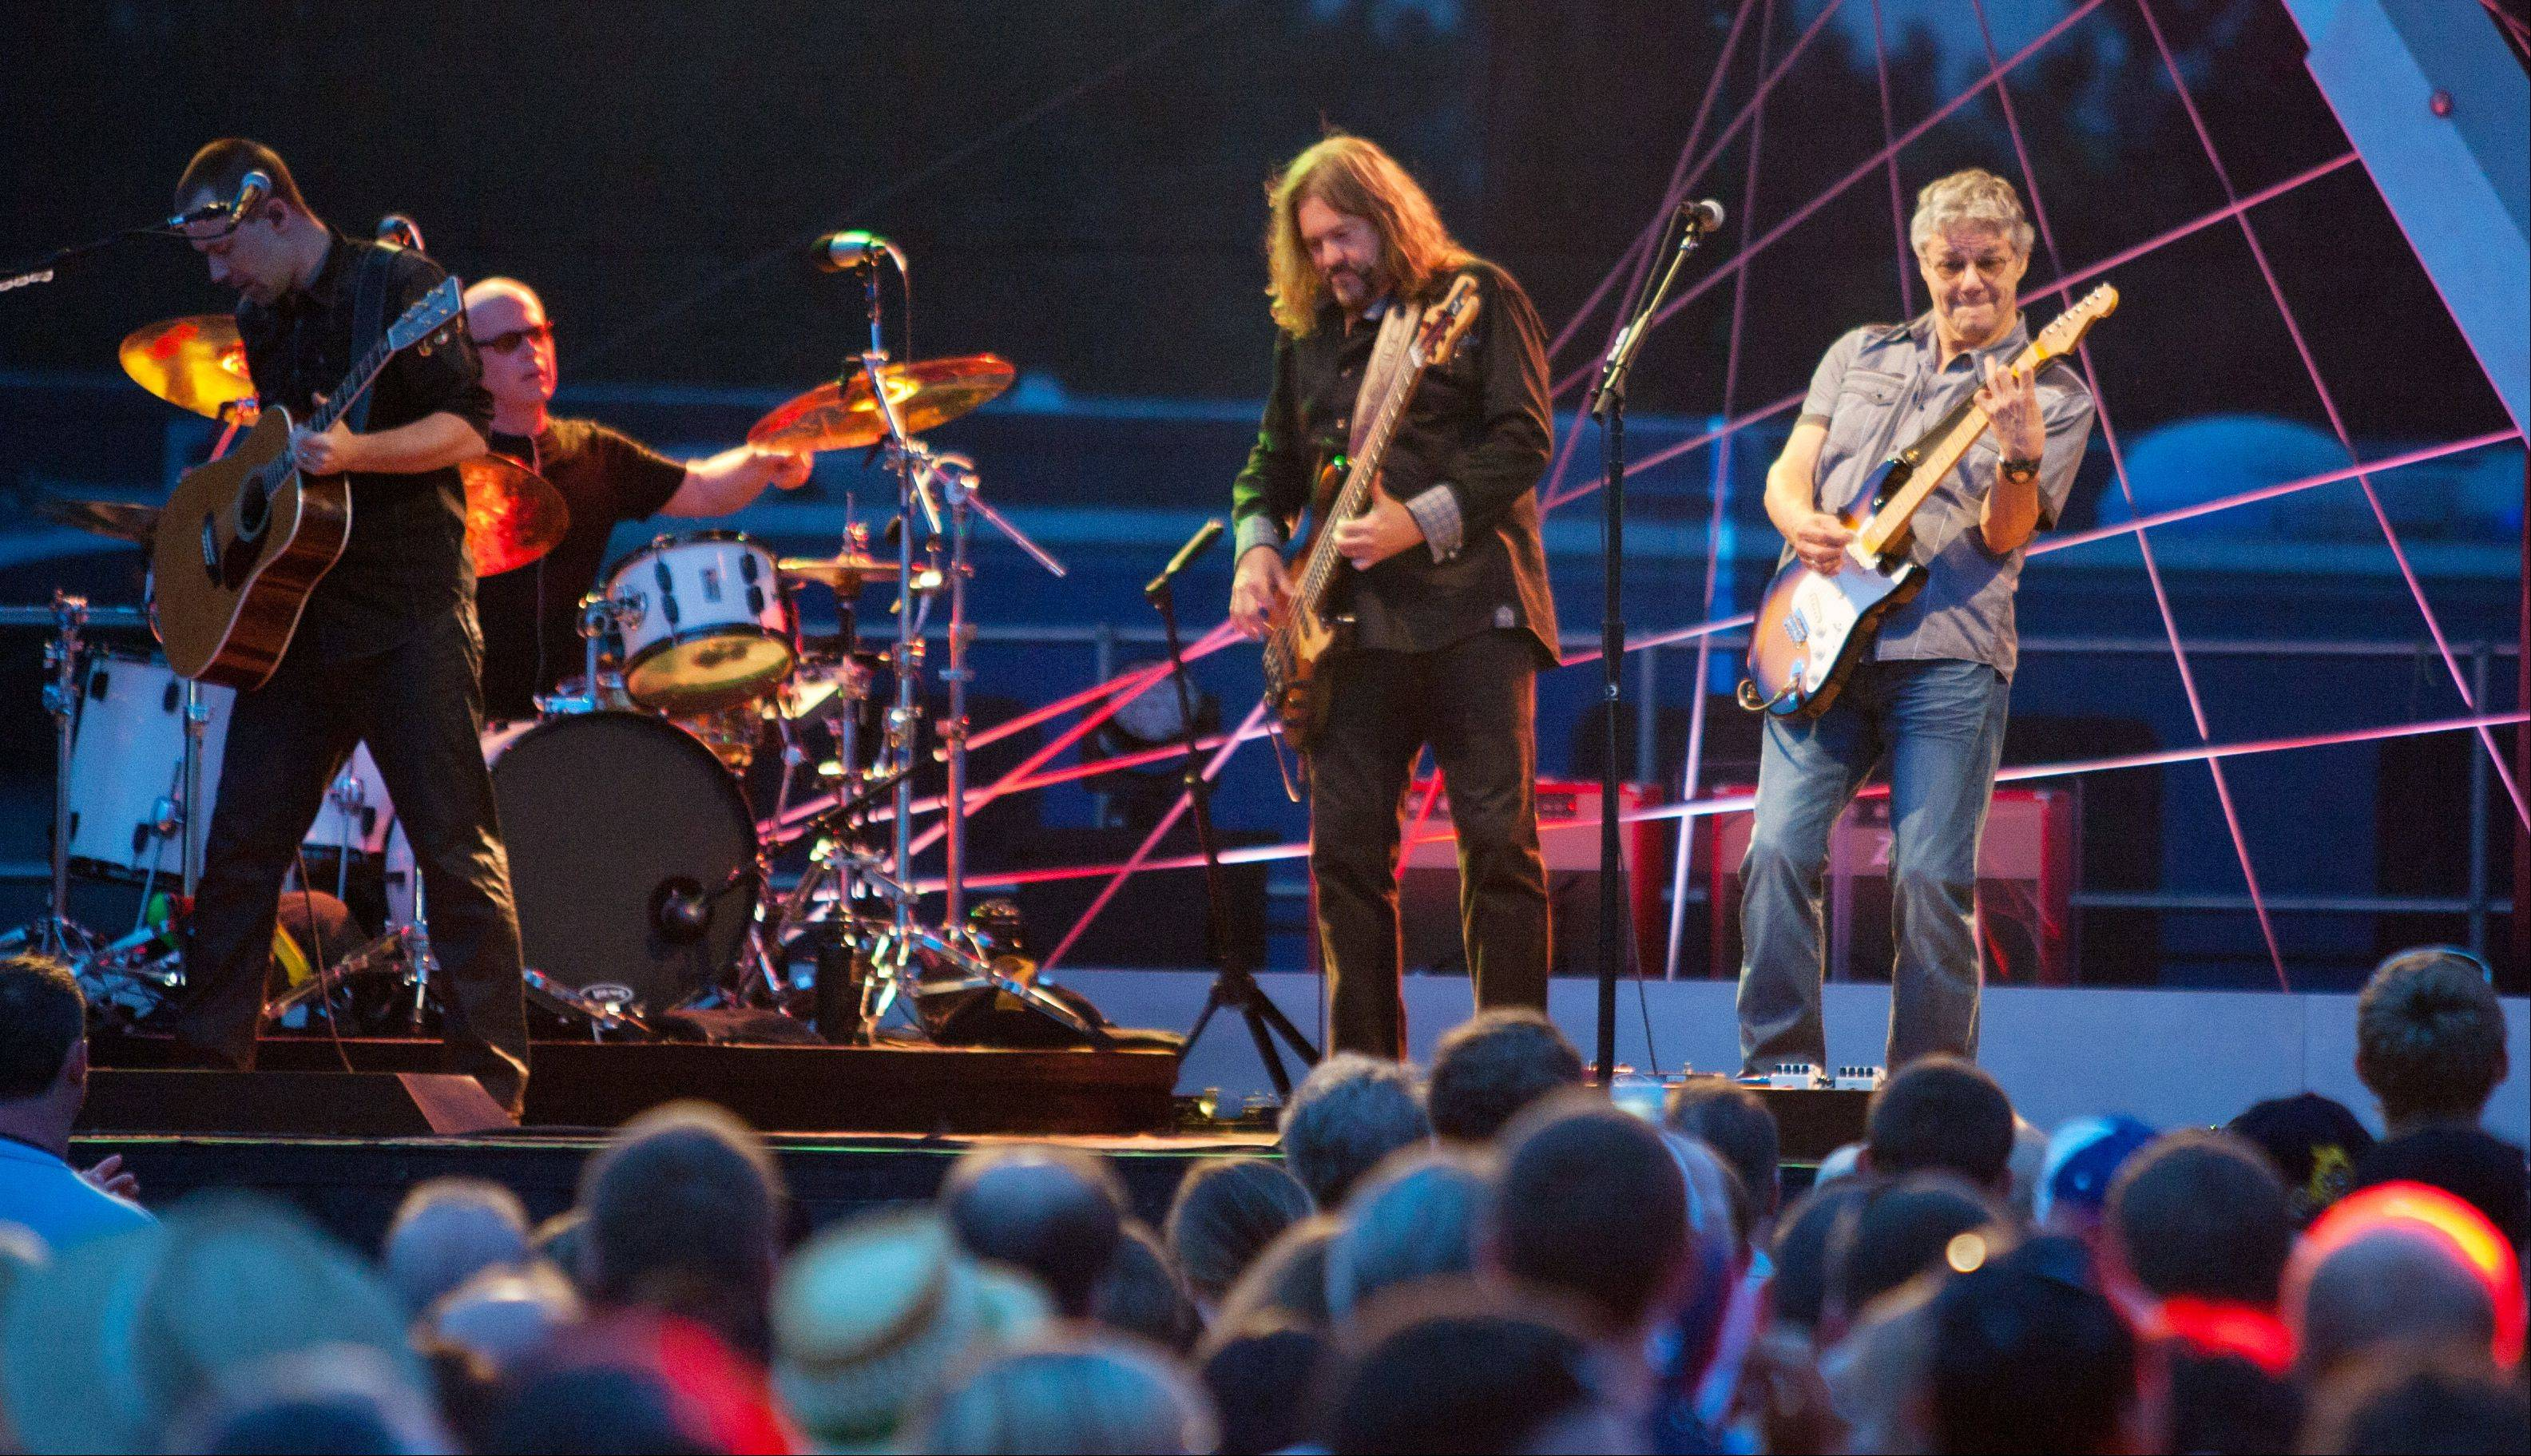 Steve Miller, right, of the Steve Miller Band, headlines the first day of Ribfest in Naperville.